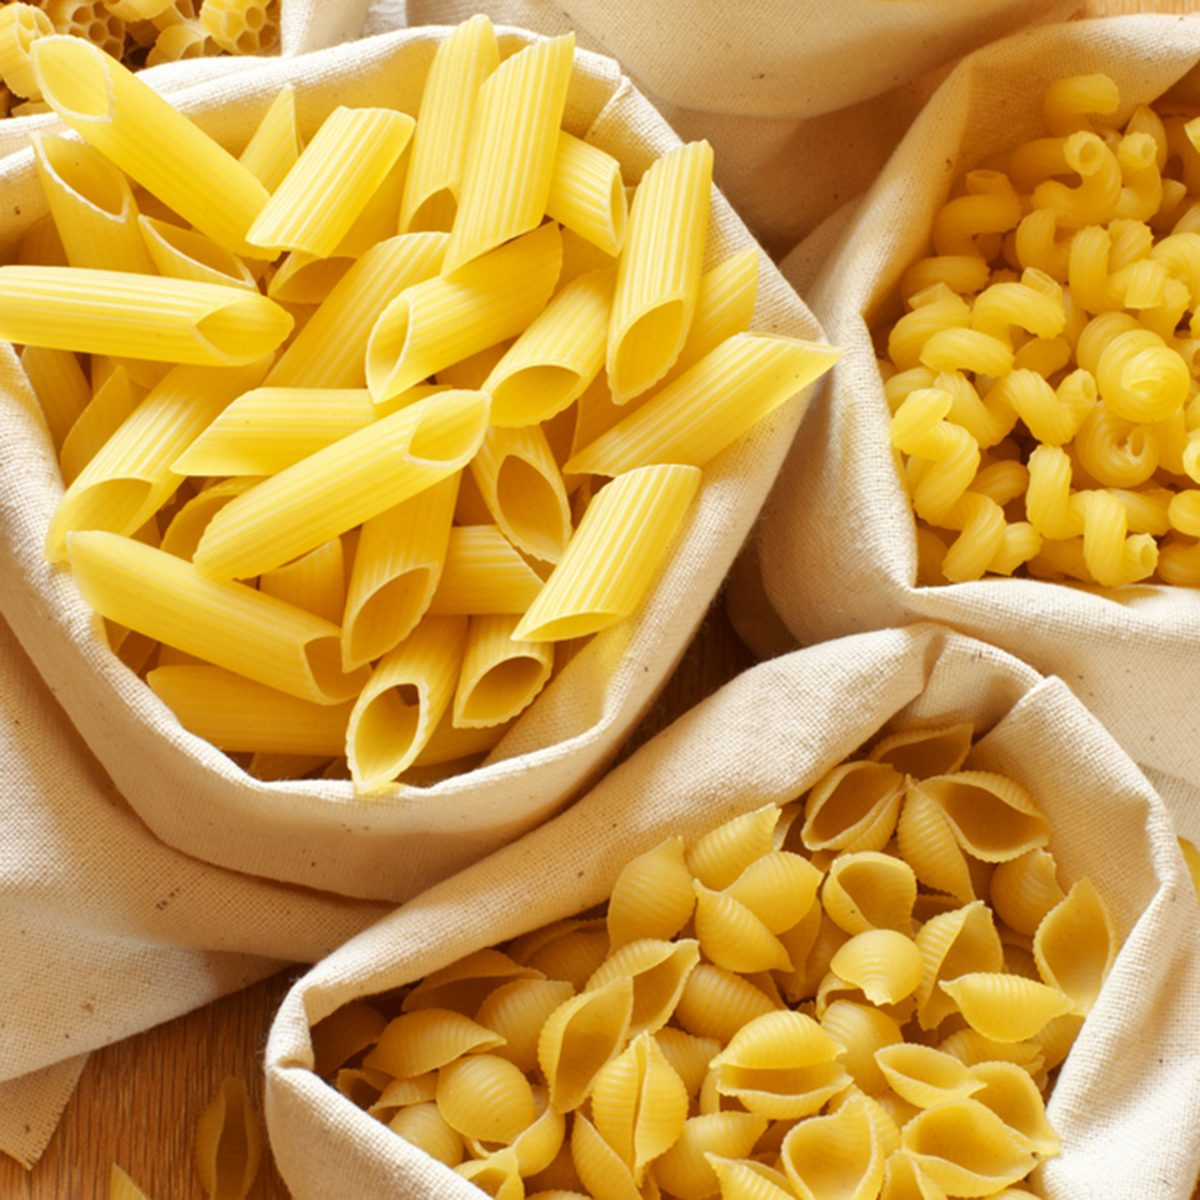 Close-up of assorted pasta in jute bags.